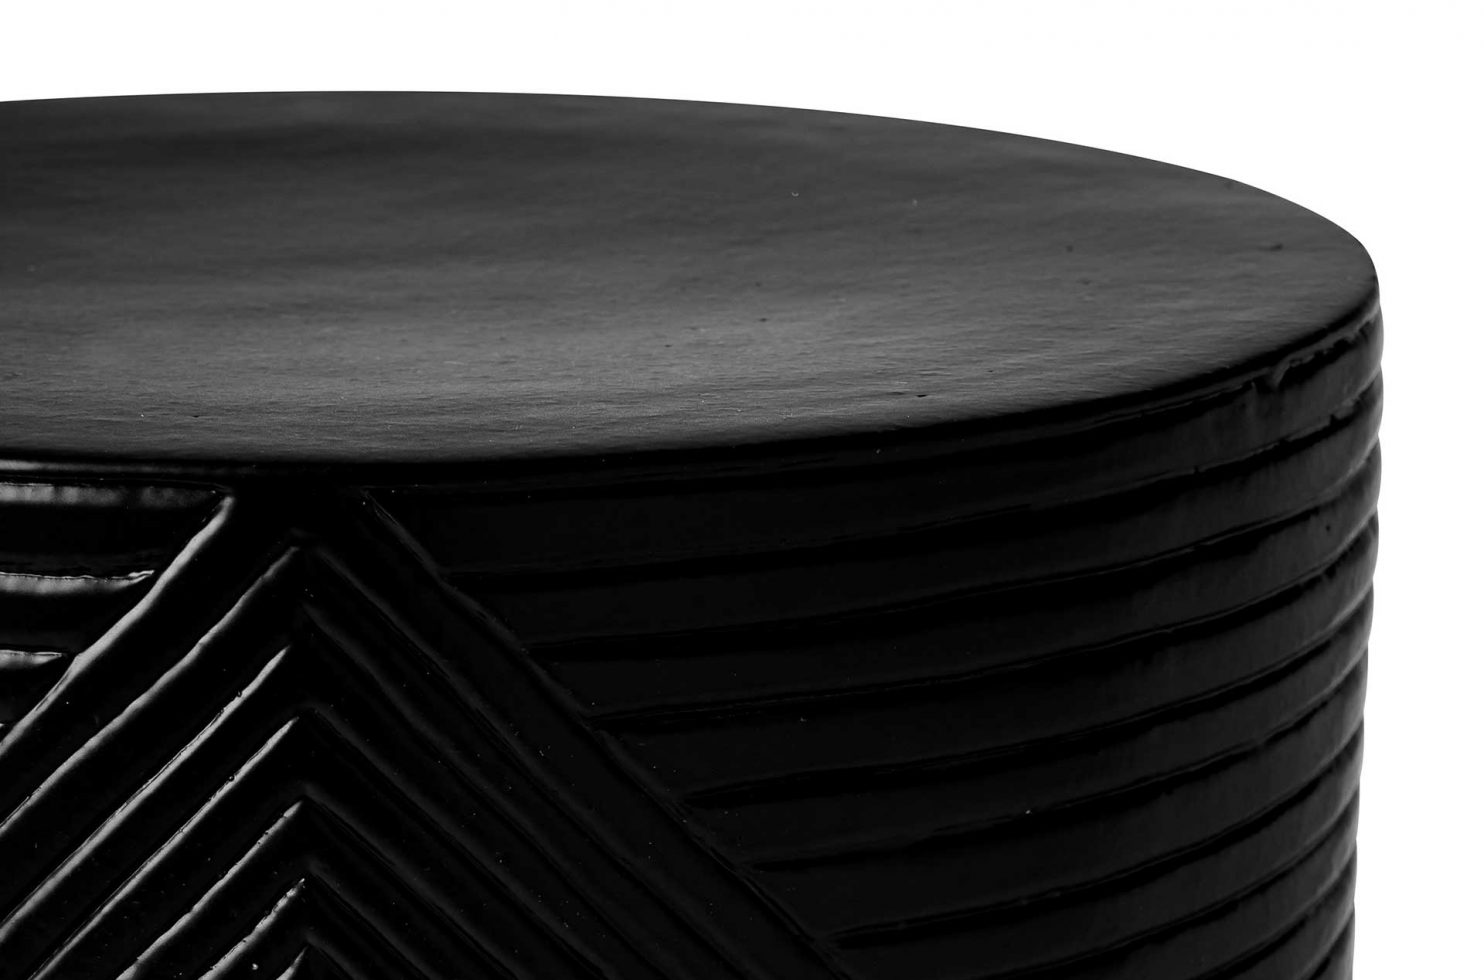 prov cer serenity textured side table 16in C30802032 coal dtl3 web